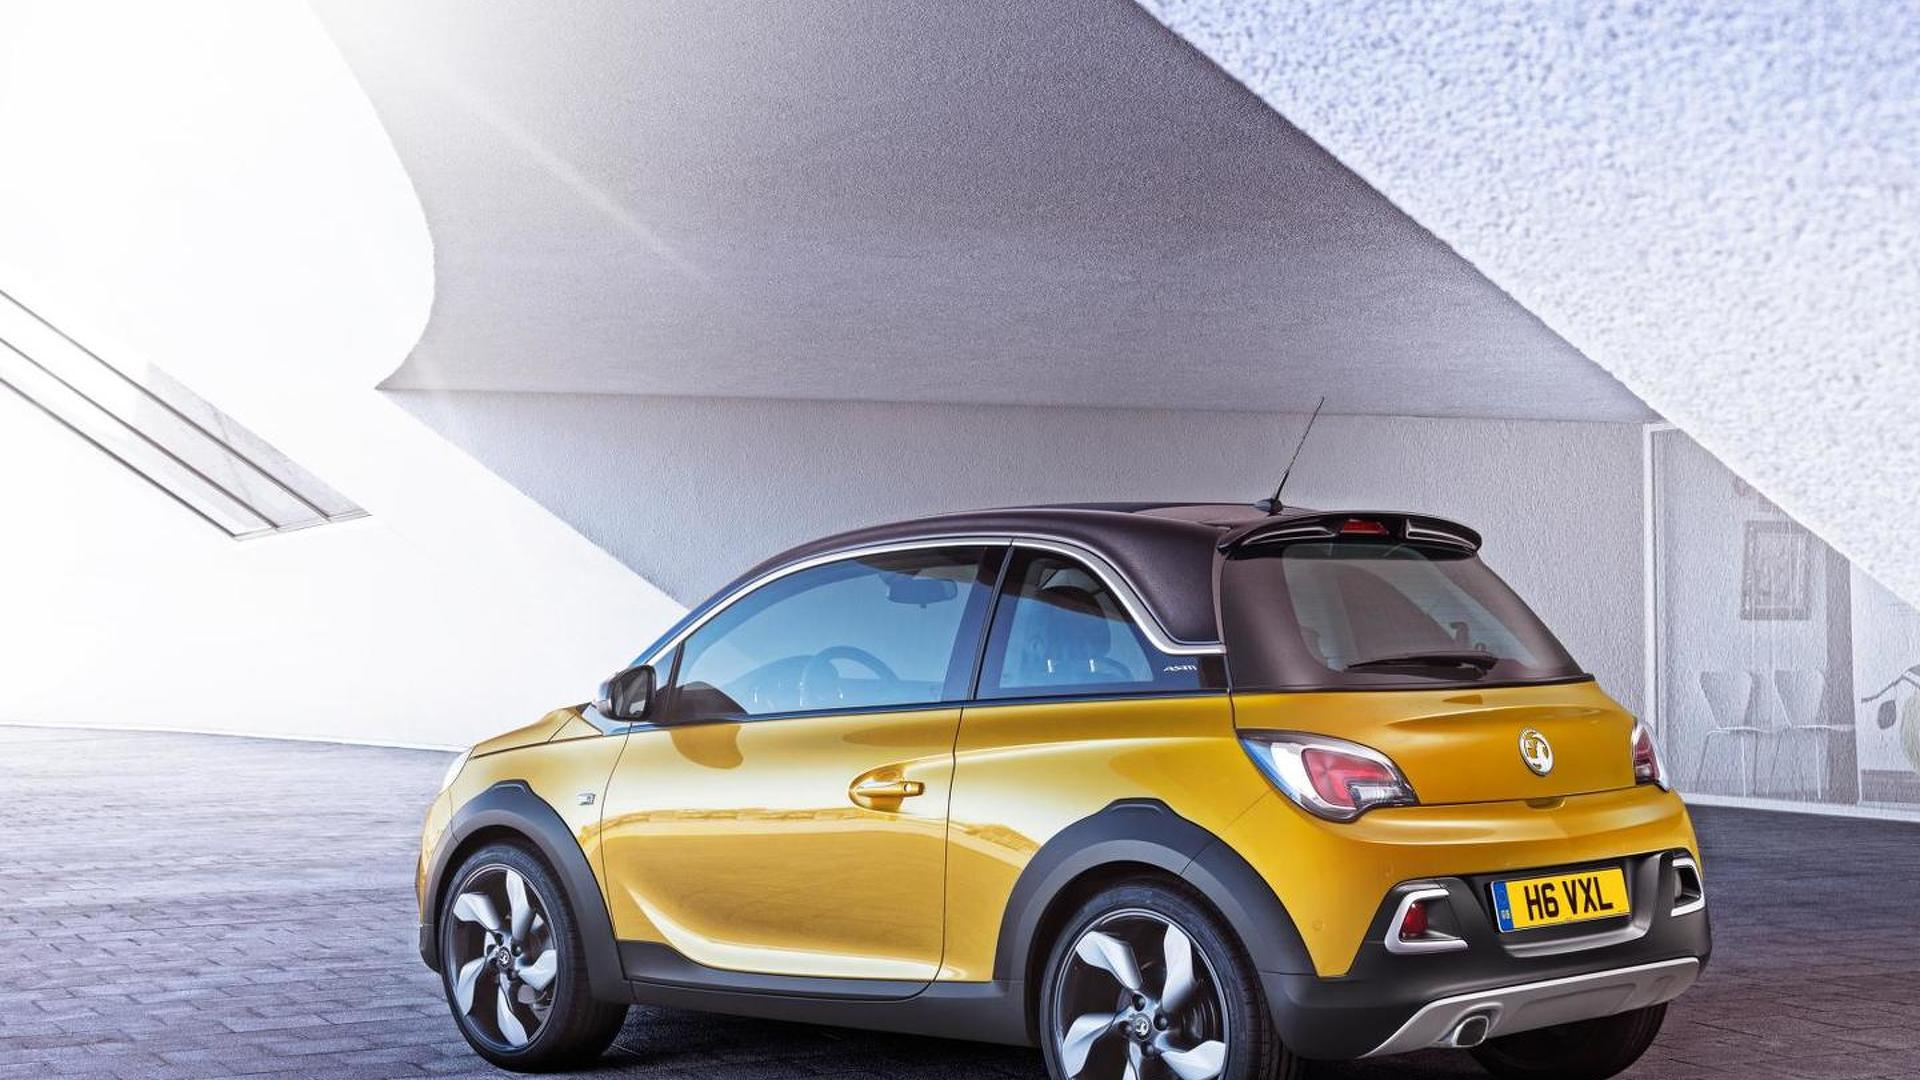 Vauxhall ADAM ROCKS launches with £14,695 base price, 100+ new photos & video released